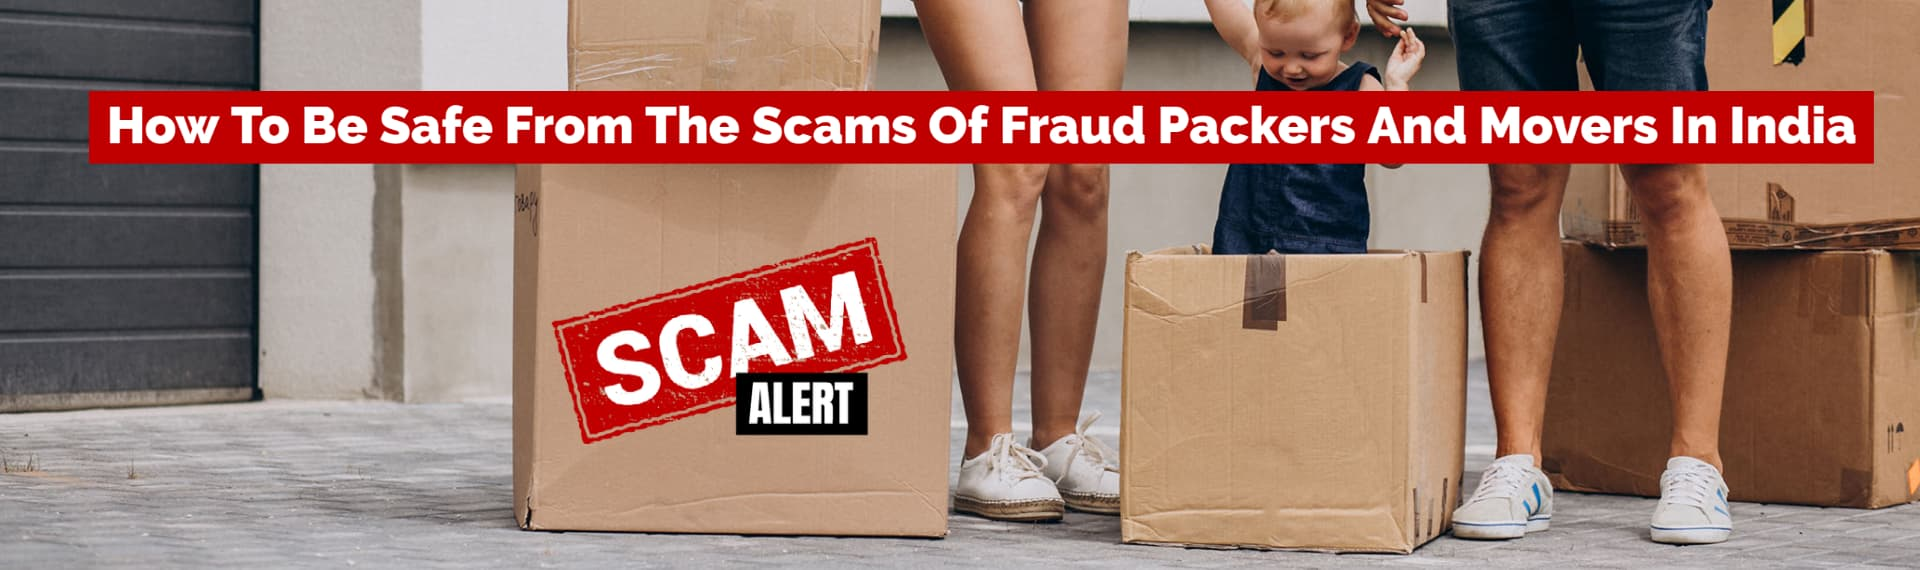 How To Stay Safe From Fraud Packers And Movers In India